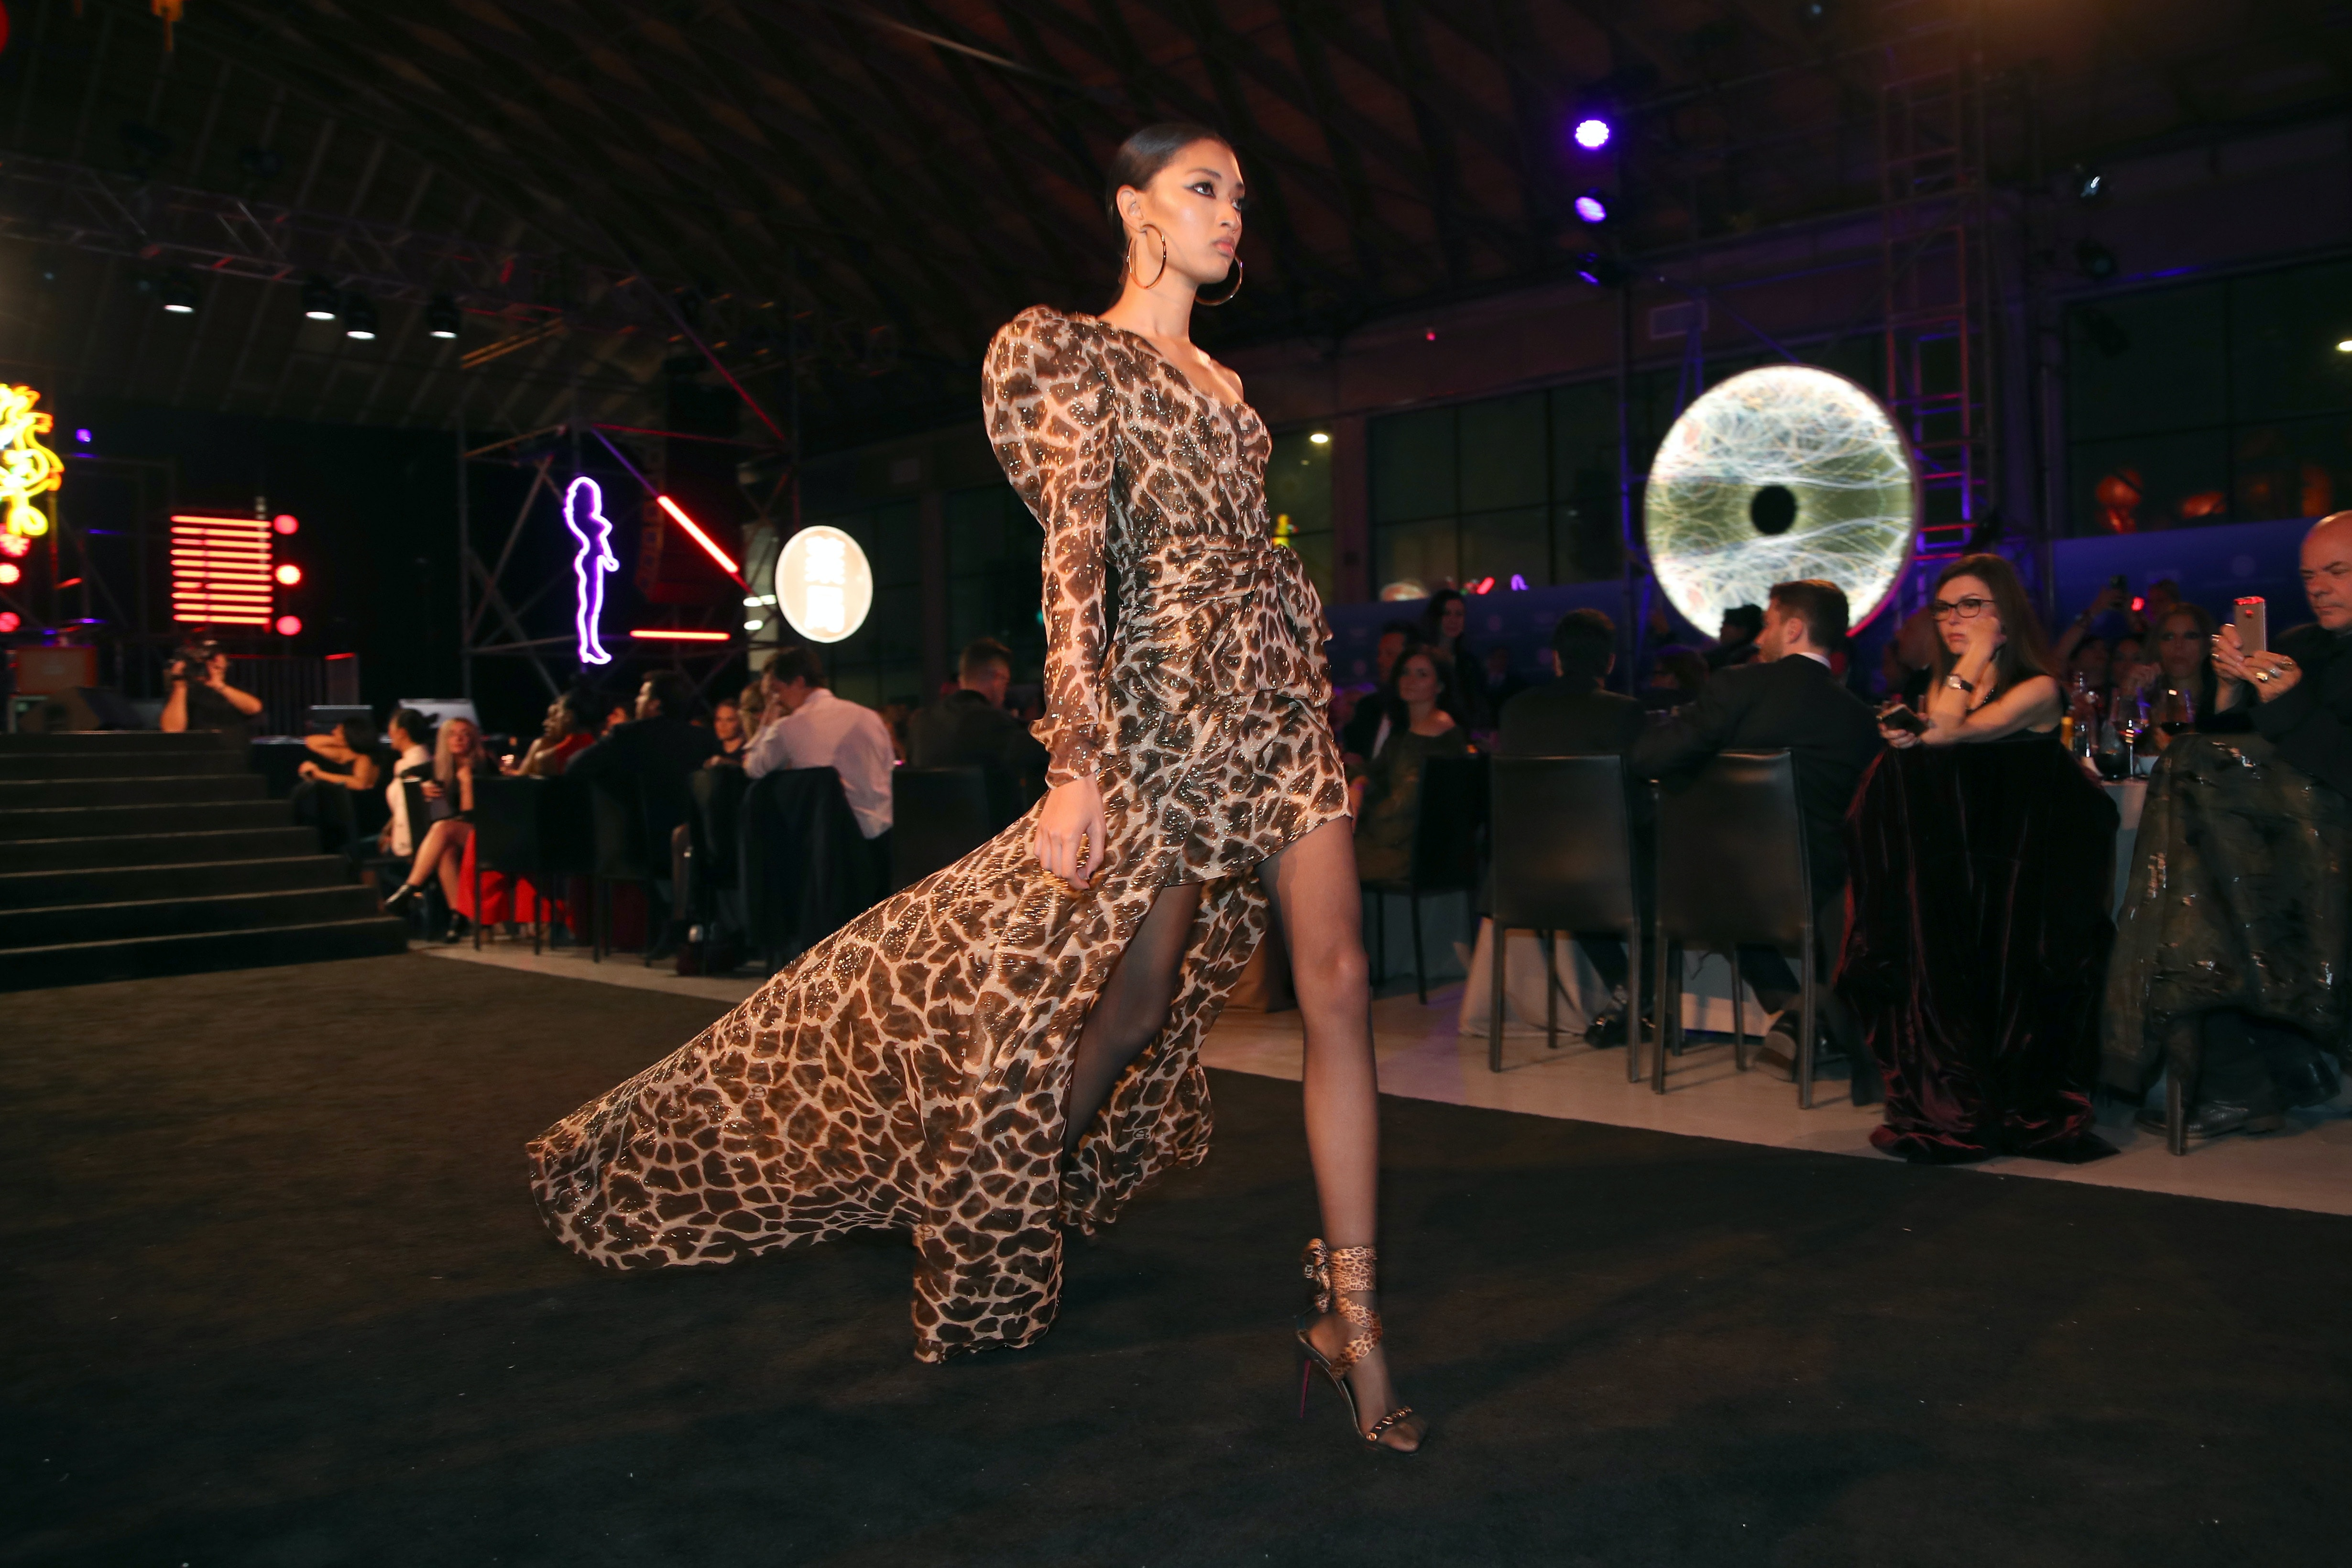 e09ce83e9437 The Leopard Print Fashion Trend Isn't Going Anywhere, So Go Ahead And Get  Wild